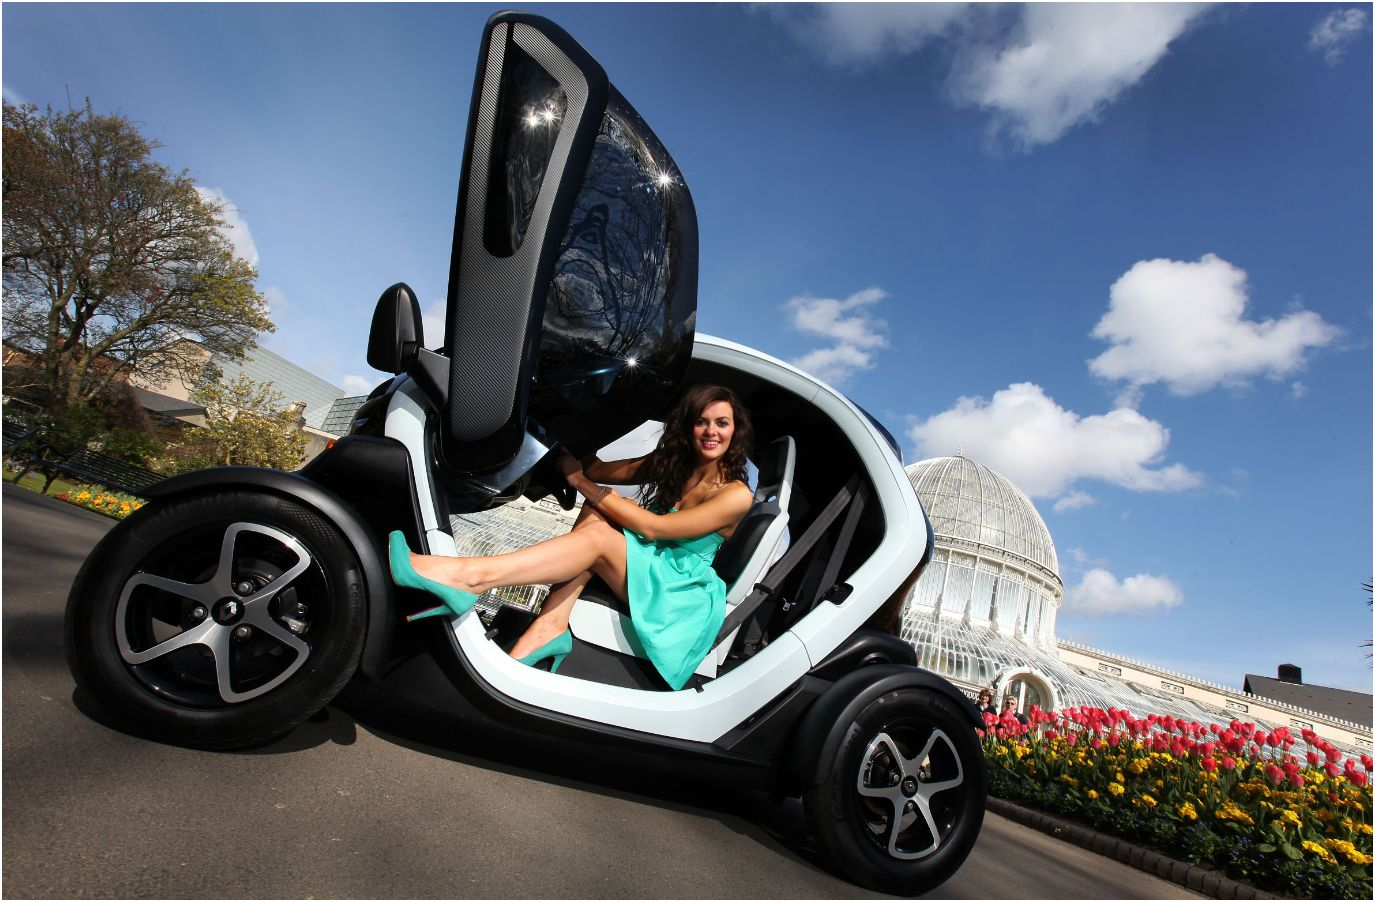 Enerdel Think Lithionpack likewise Eptender Generator X besides Renault Espace Interior First Photos likewise Twizzy Tiny Vehicle France besides . on renault twizy electric car